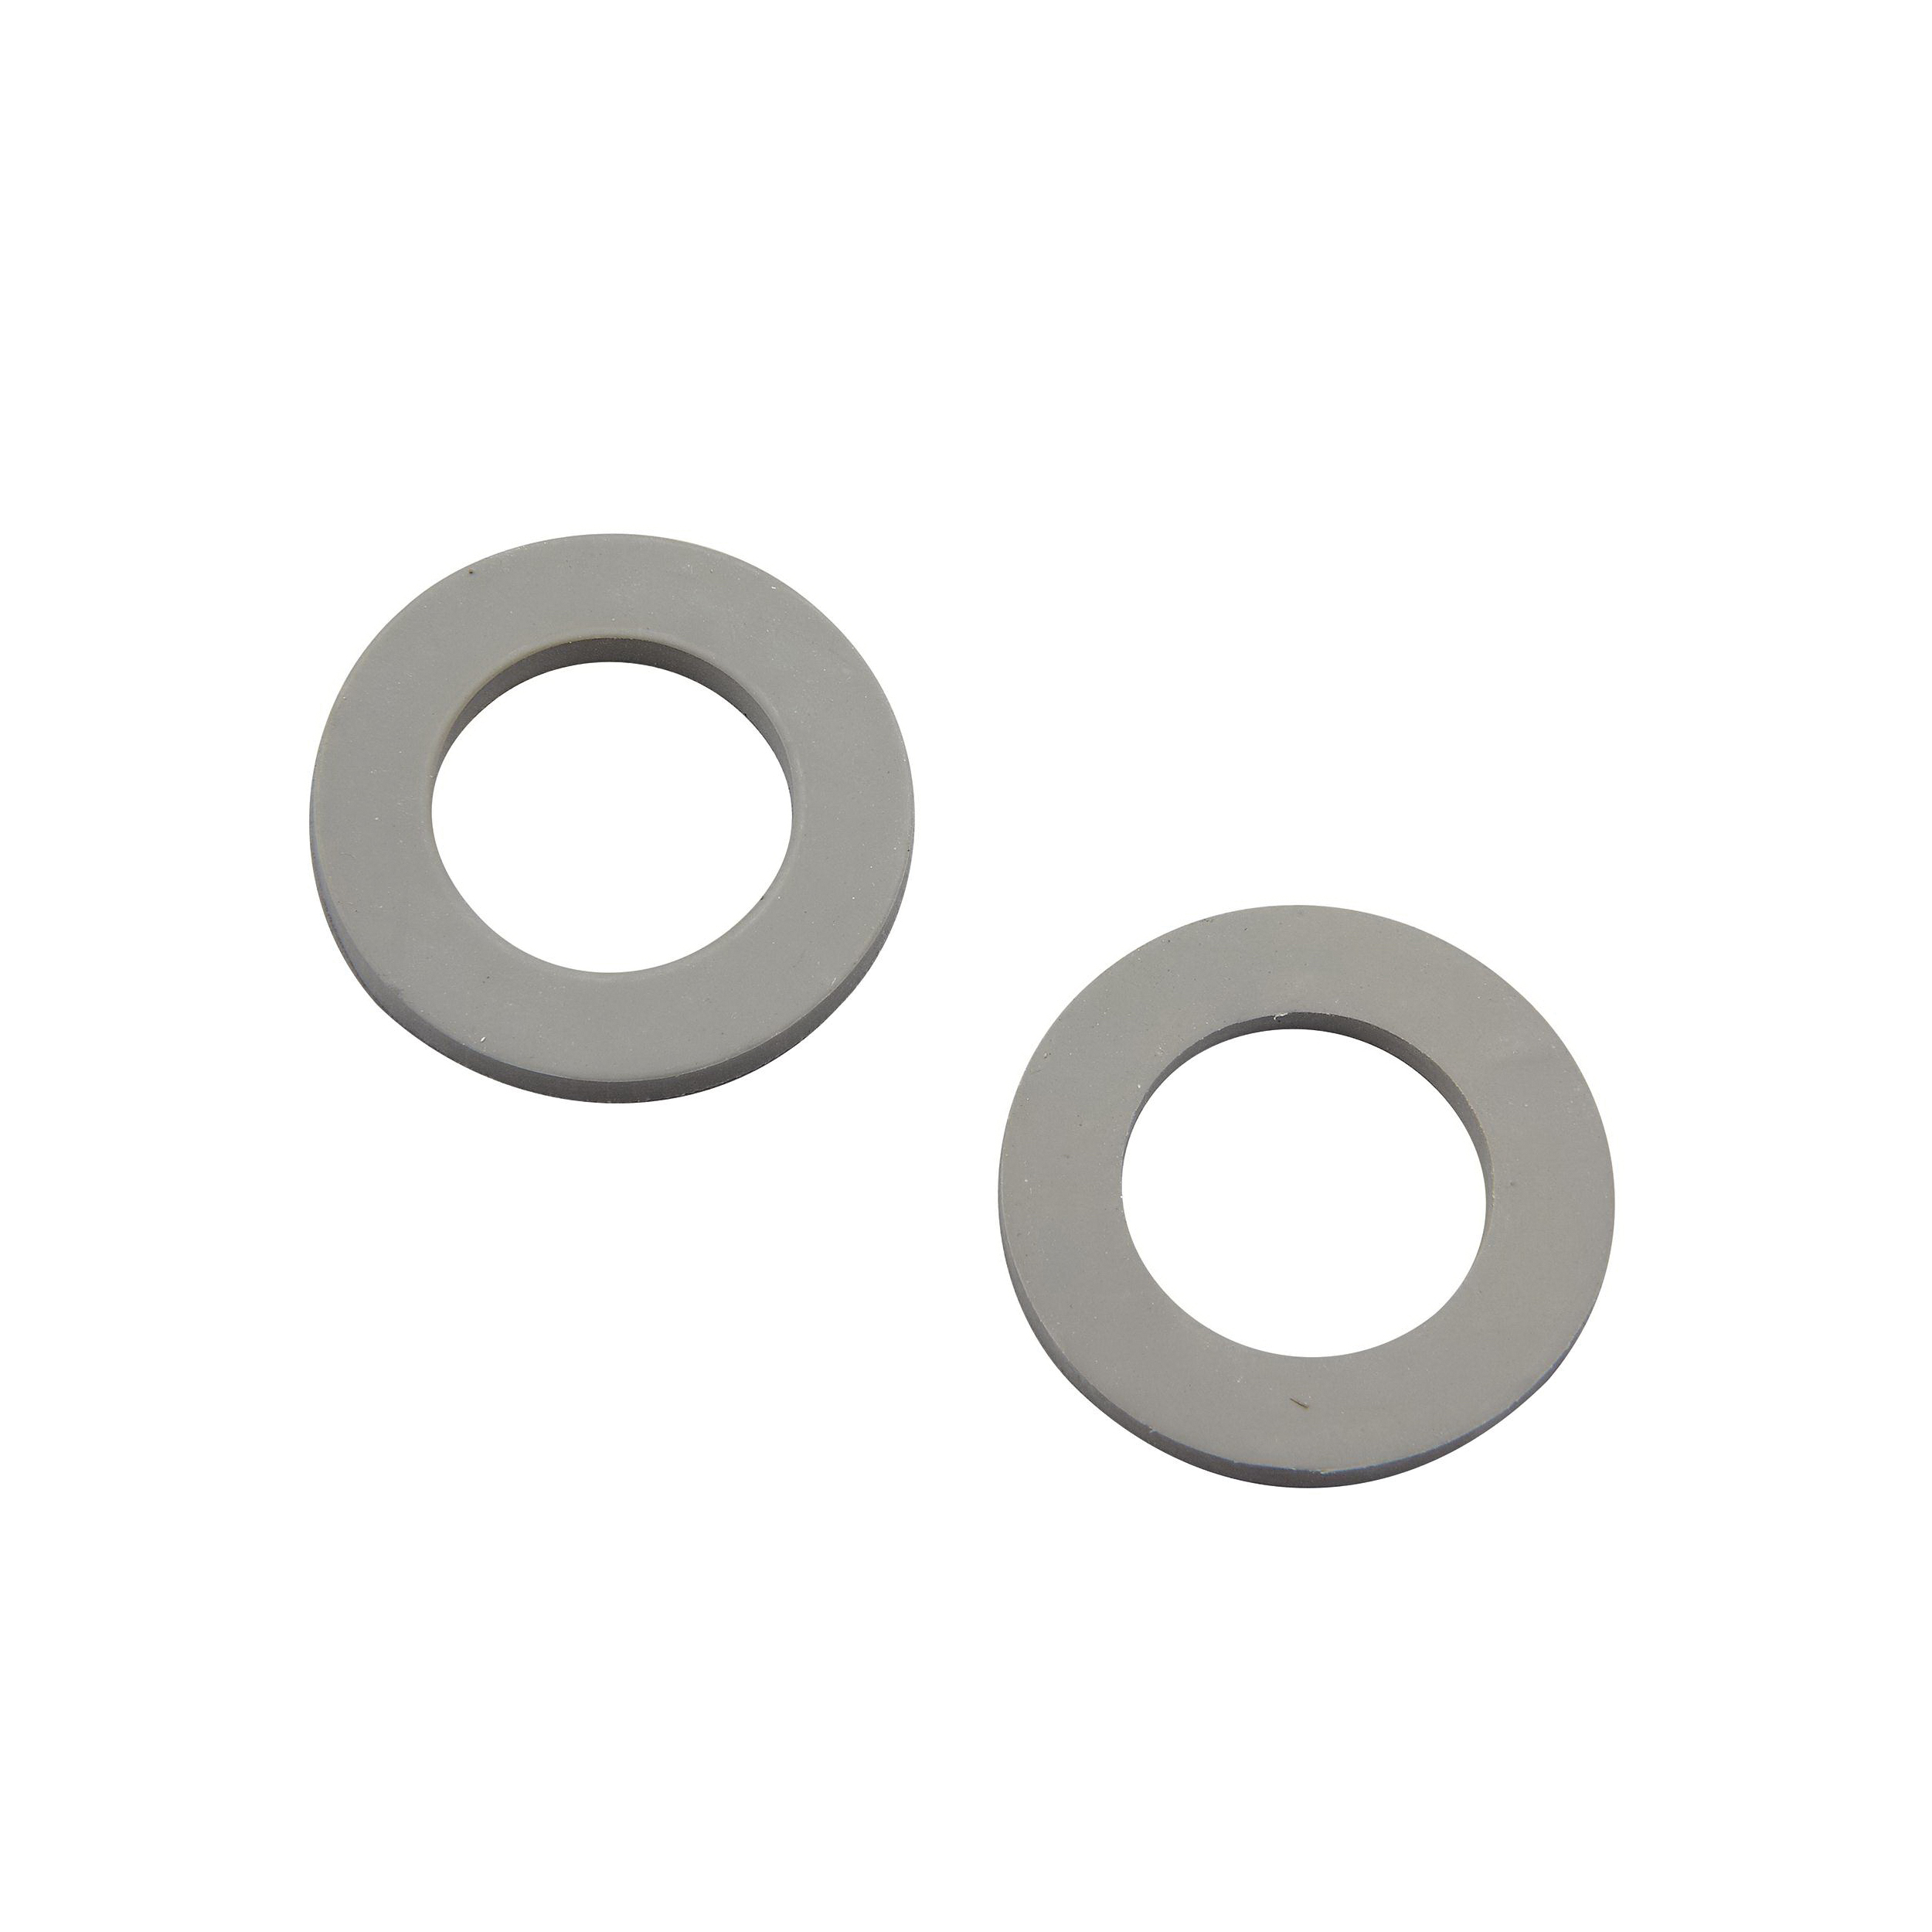 WATTS® 0881426 KIT GB Dielectric Union Gasket Kit, 1/2 x 3/4 in Nominal